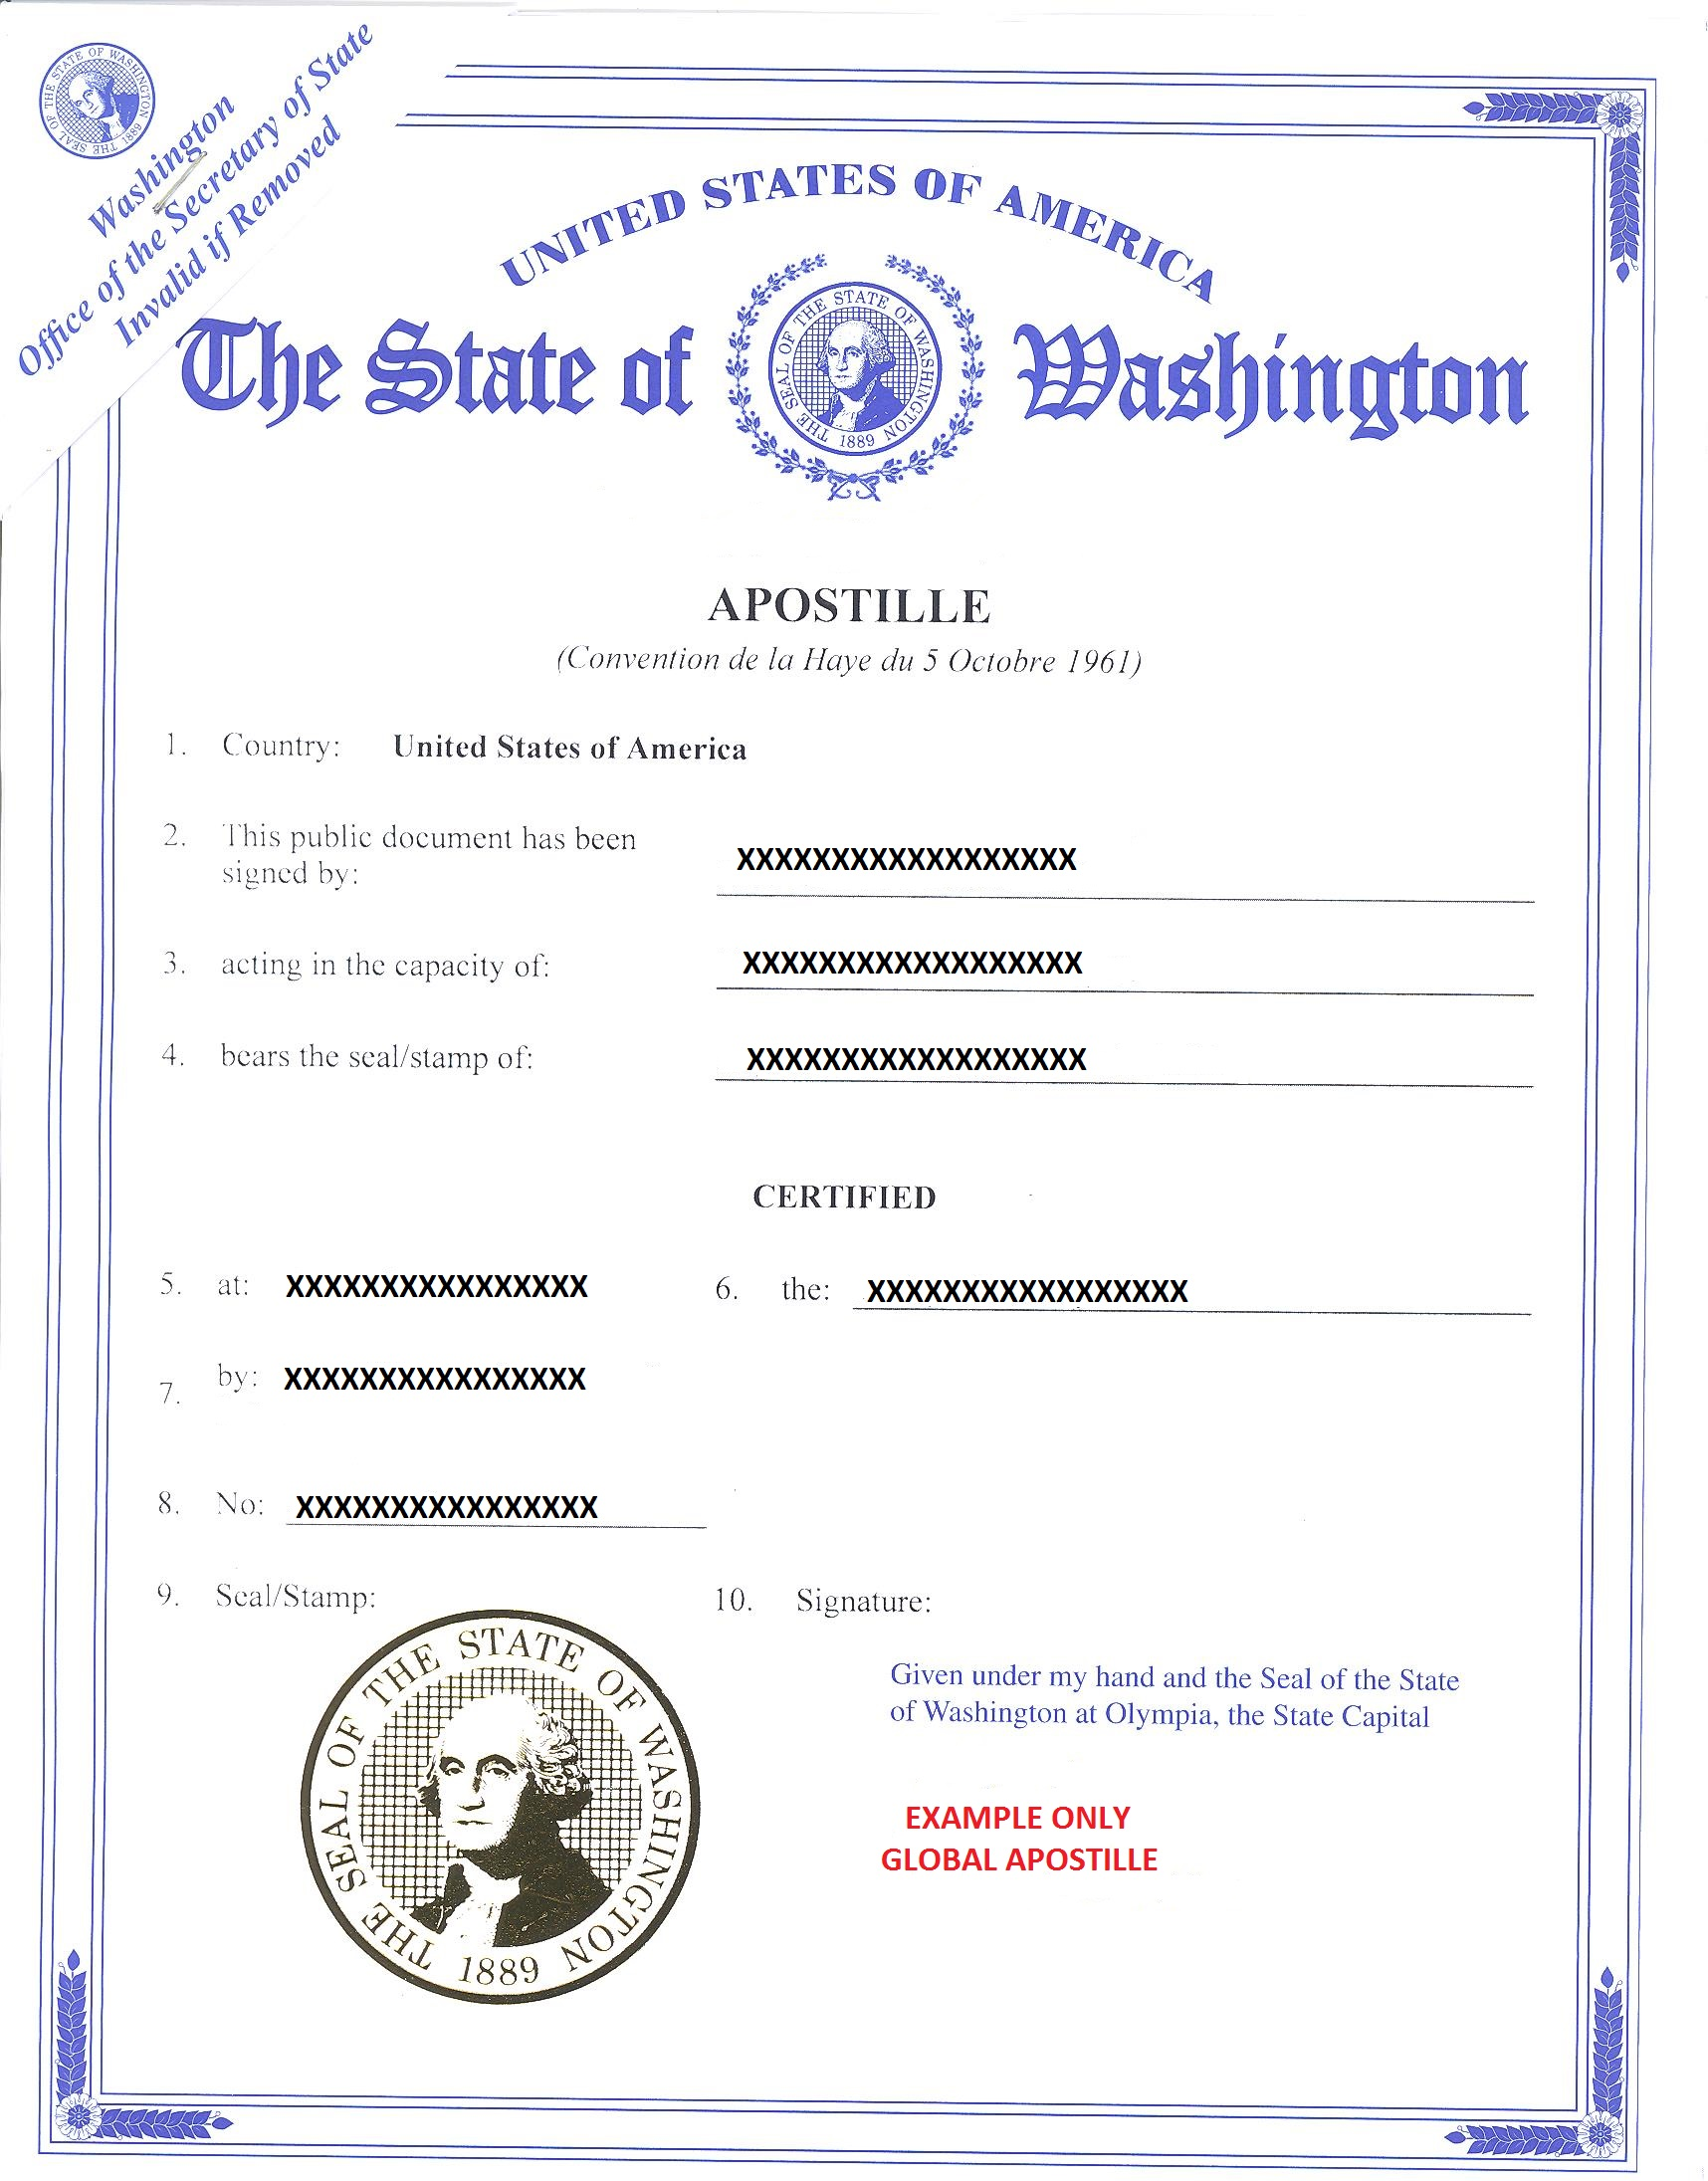 APOSTILLE WASHINGTON, АПОСТИЛЬ В ВАШИНГТОНЕ